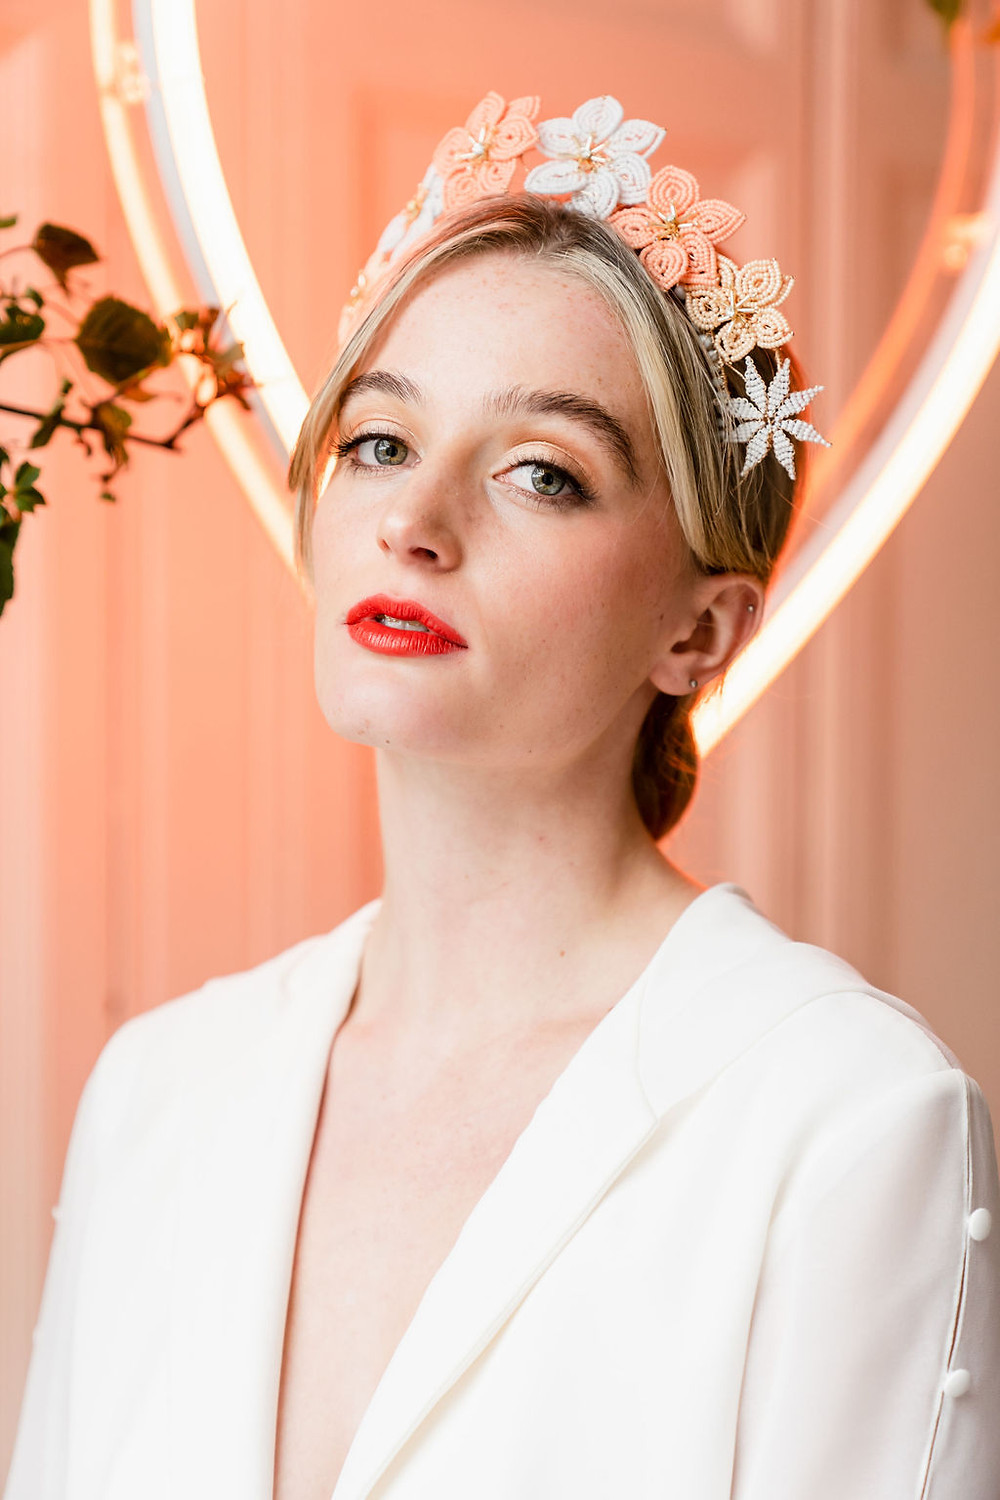 Cool, modern bride wears a hand beaded flower crown in peach, baby blue and sandstone colours, designed by wedding accessory designer Glorious by Heidi in Cheshire, UK